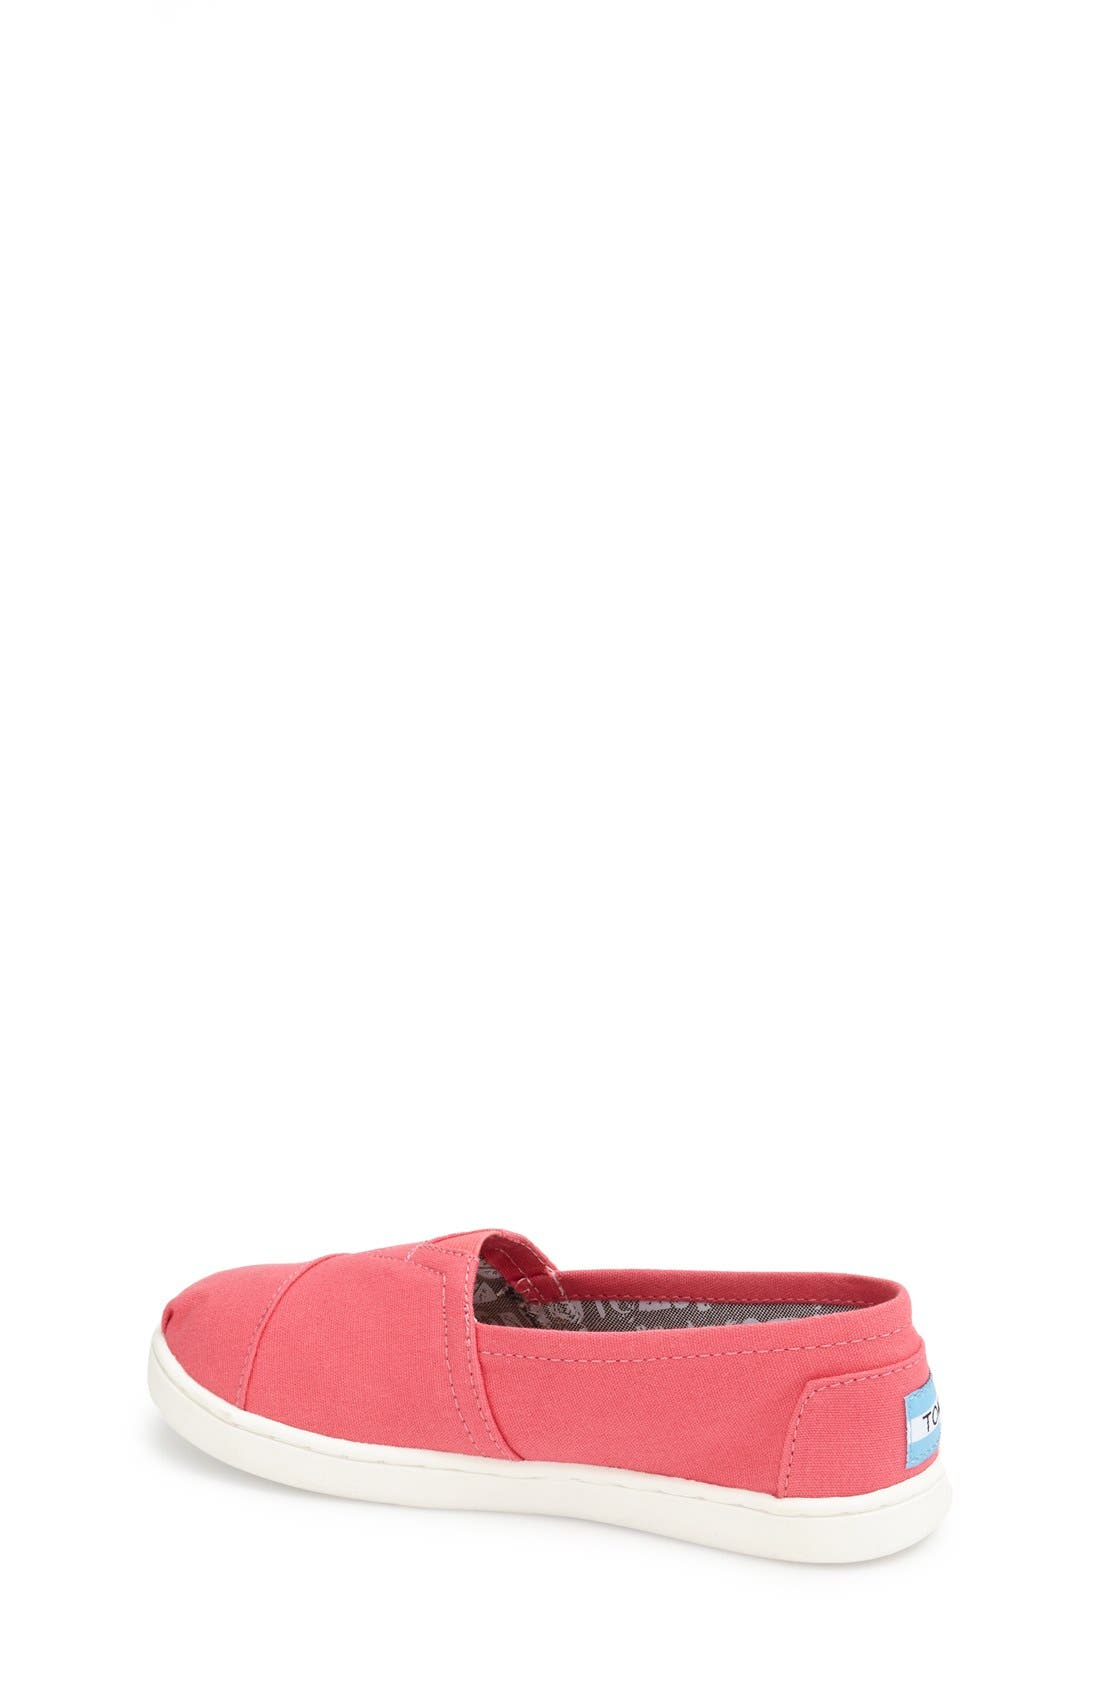 'Classic - Youth' Slip-On,                             Alternate thumbnail 2, color,                             MEDIUM PINK